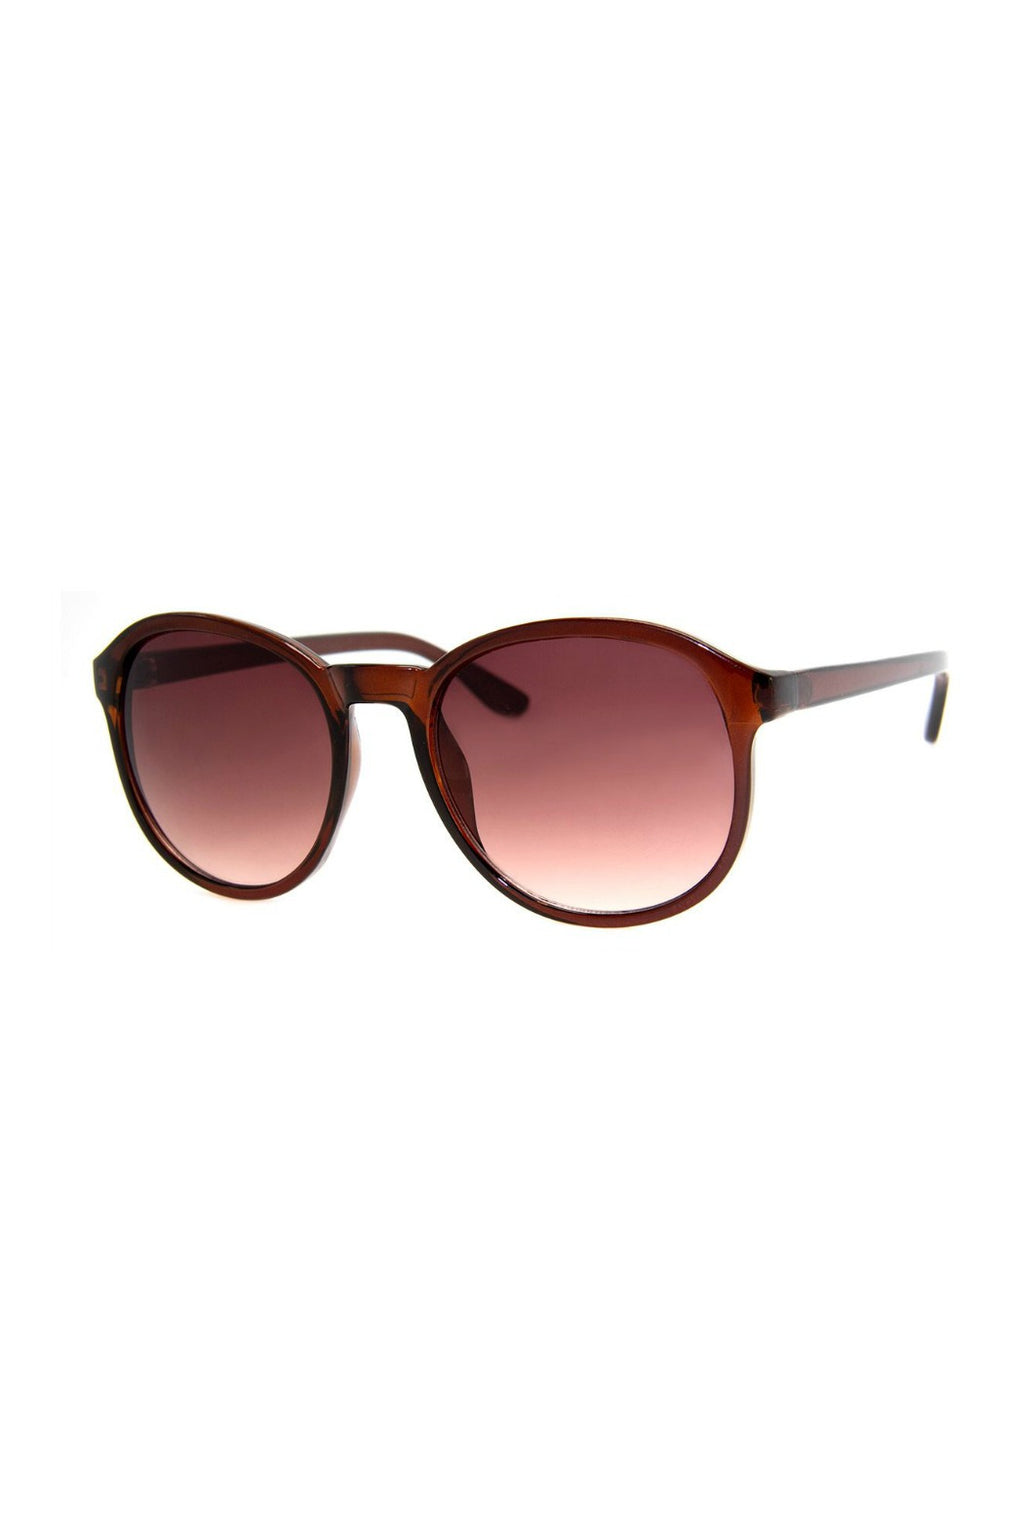 Maybe Sunnies - Burgundy